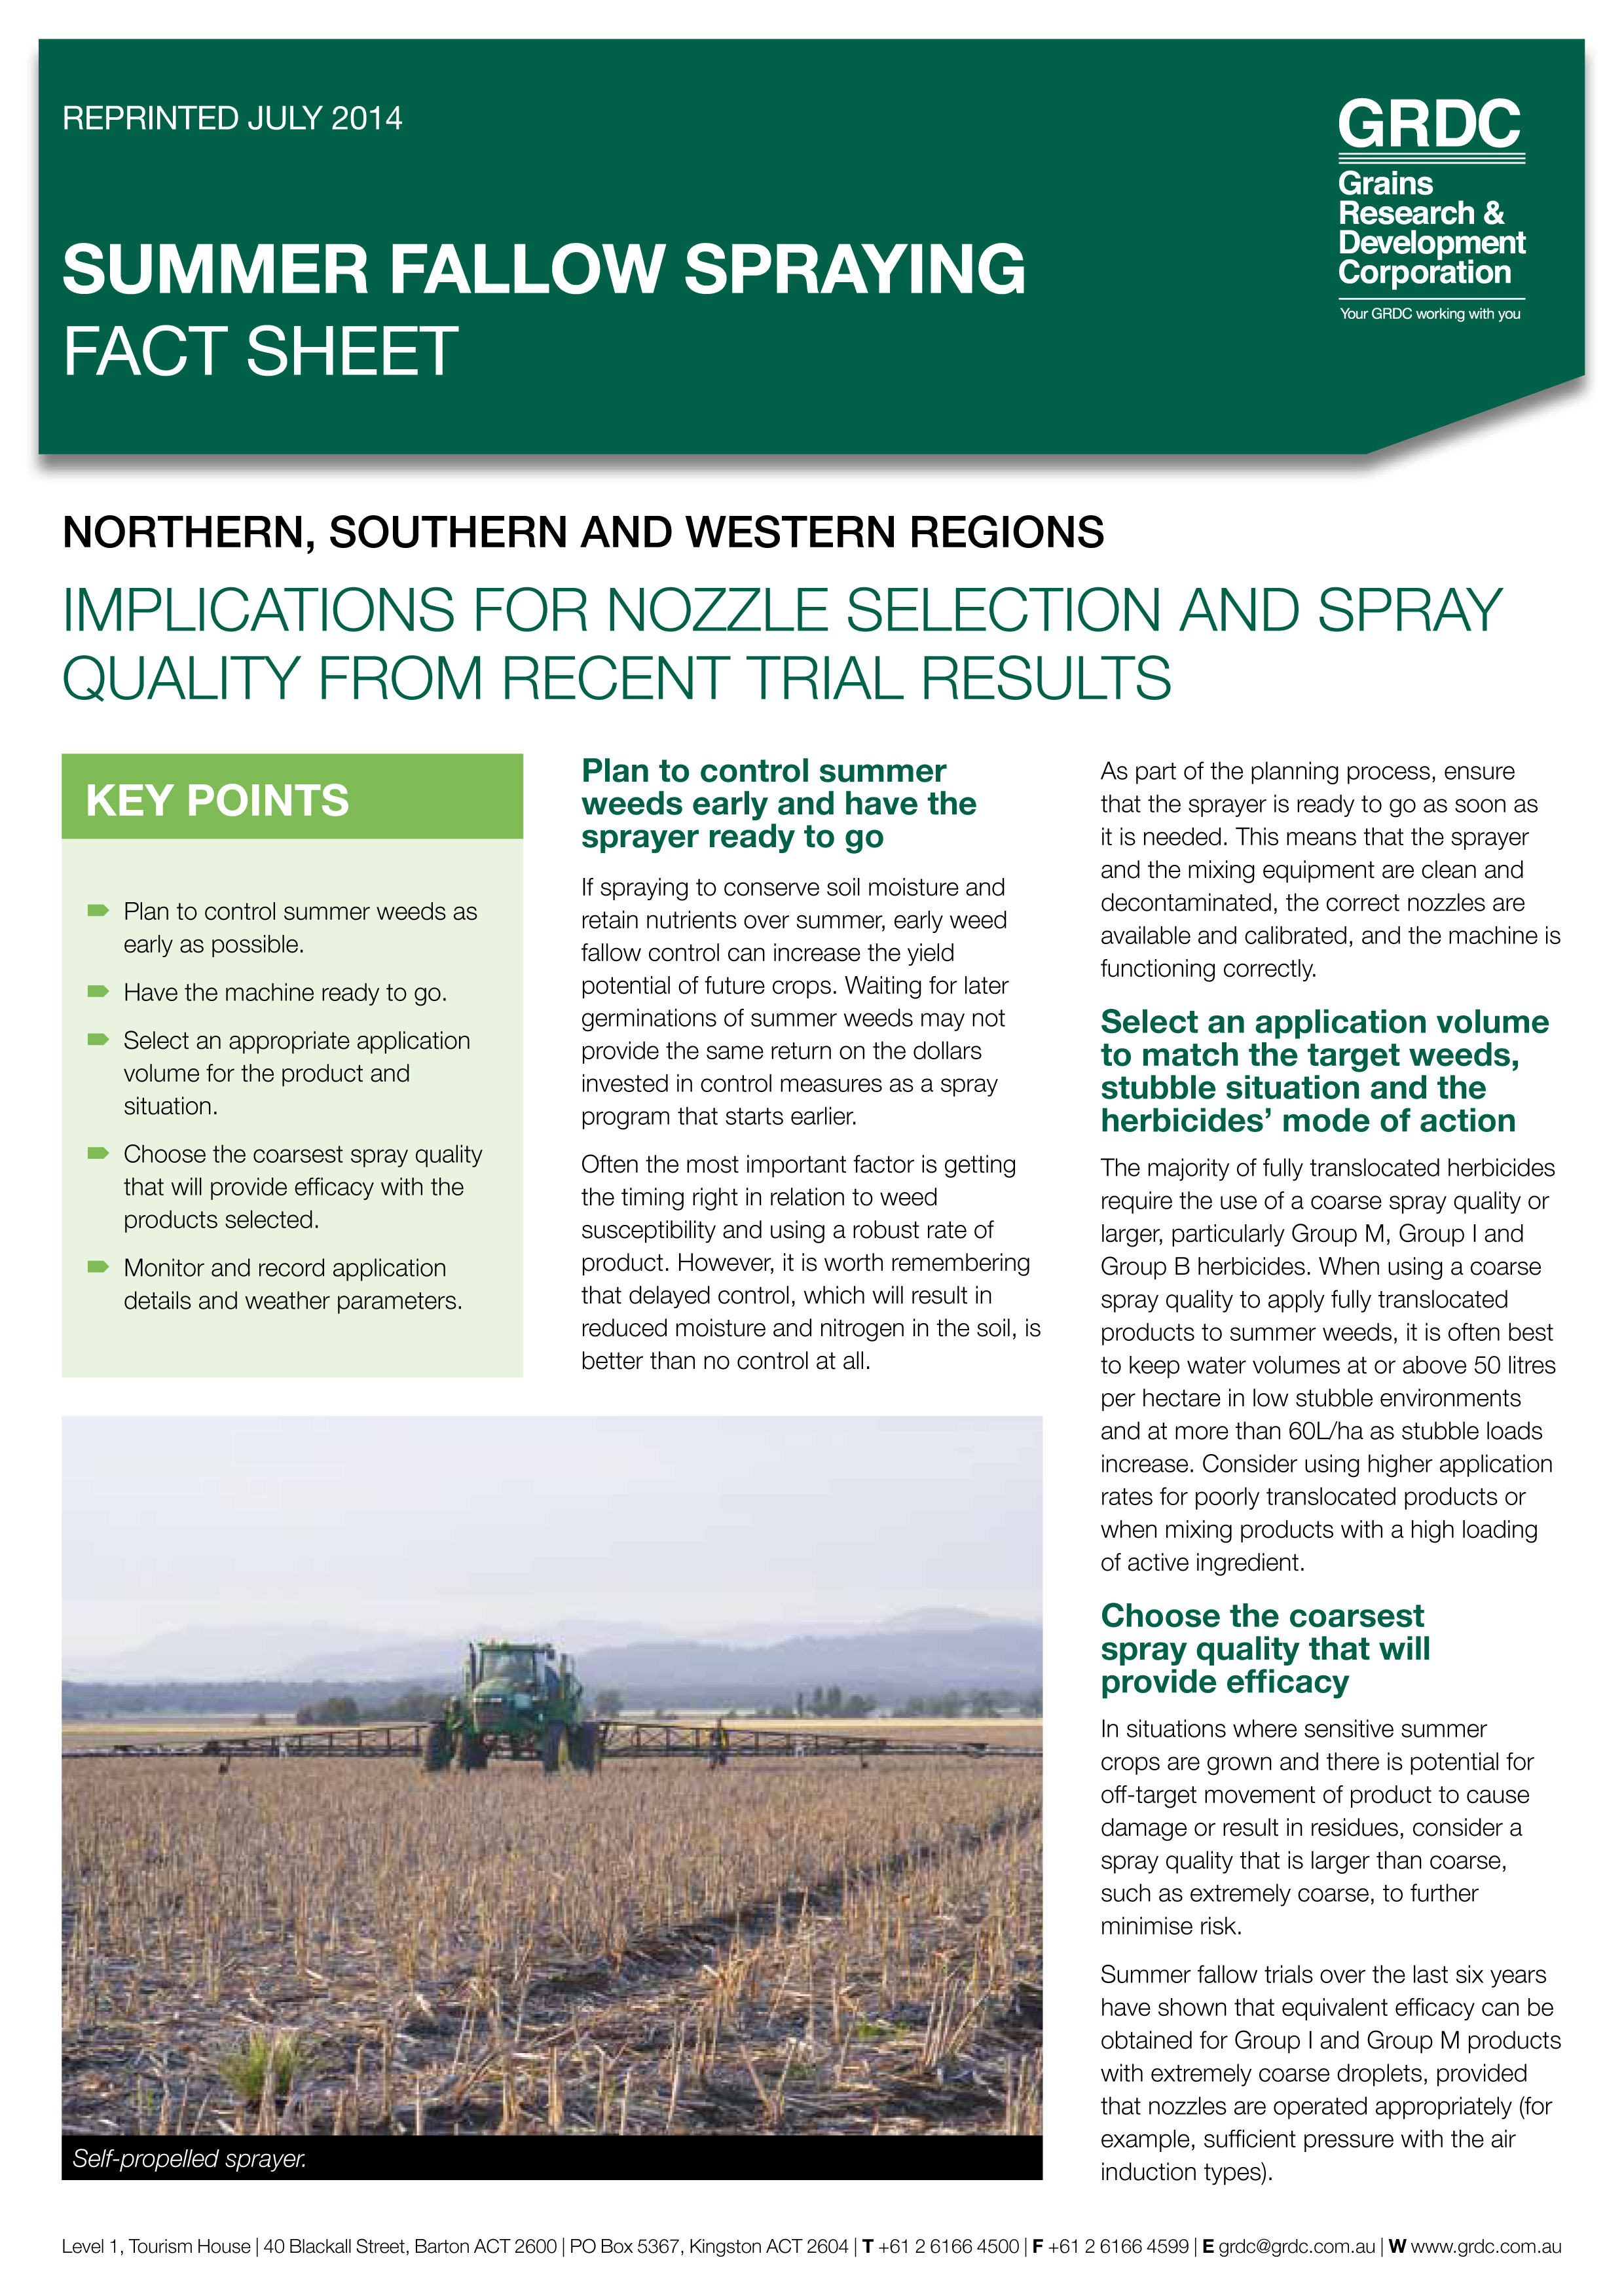 Cover of Summer Fallow Spraying fact sheet